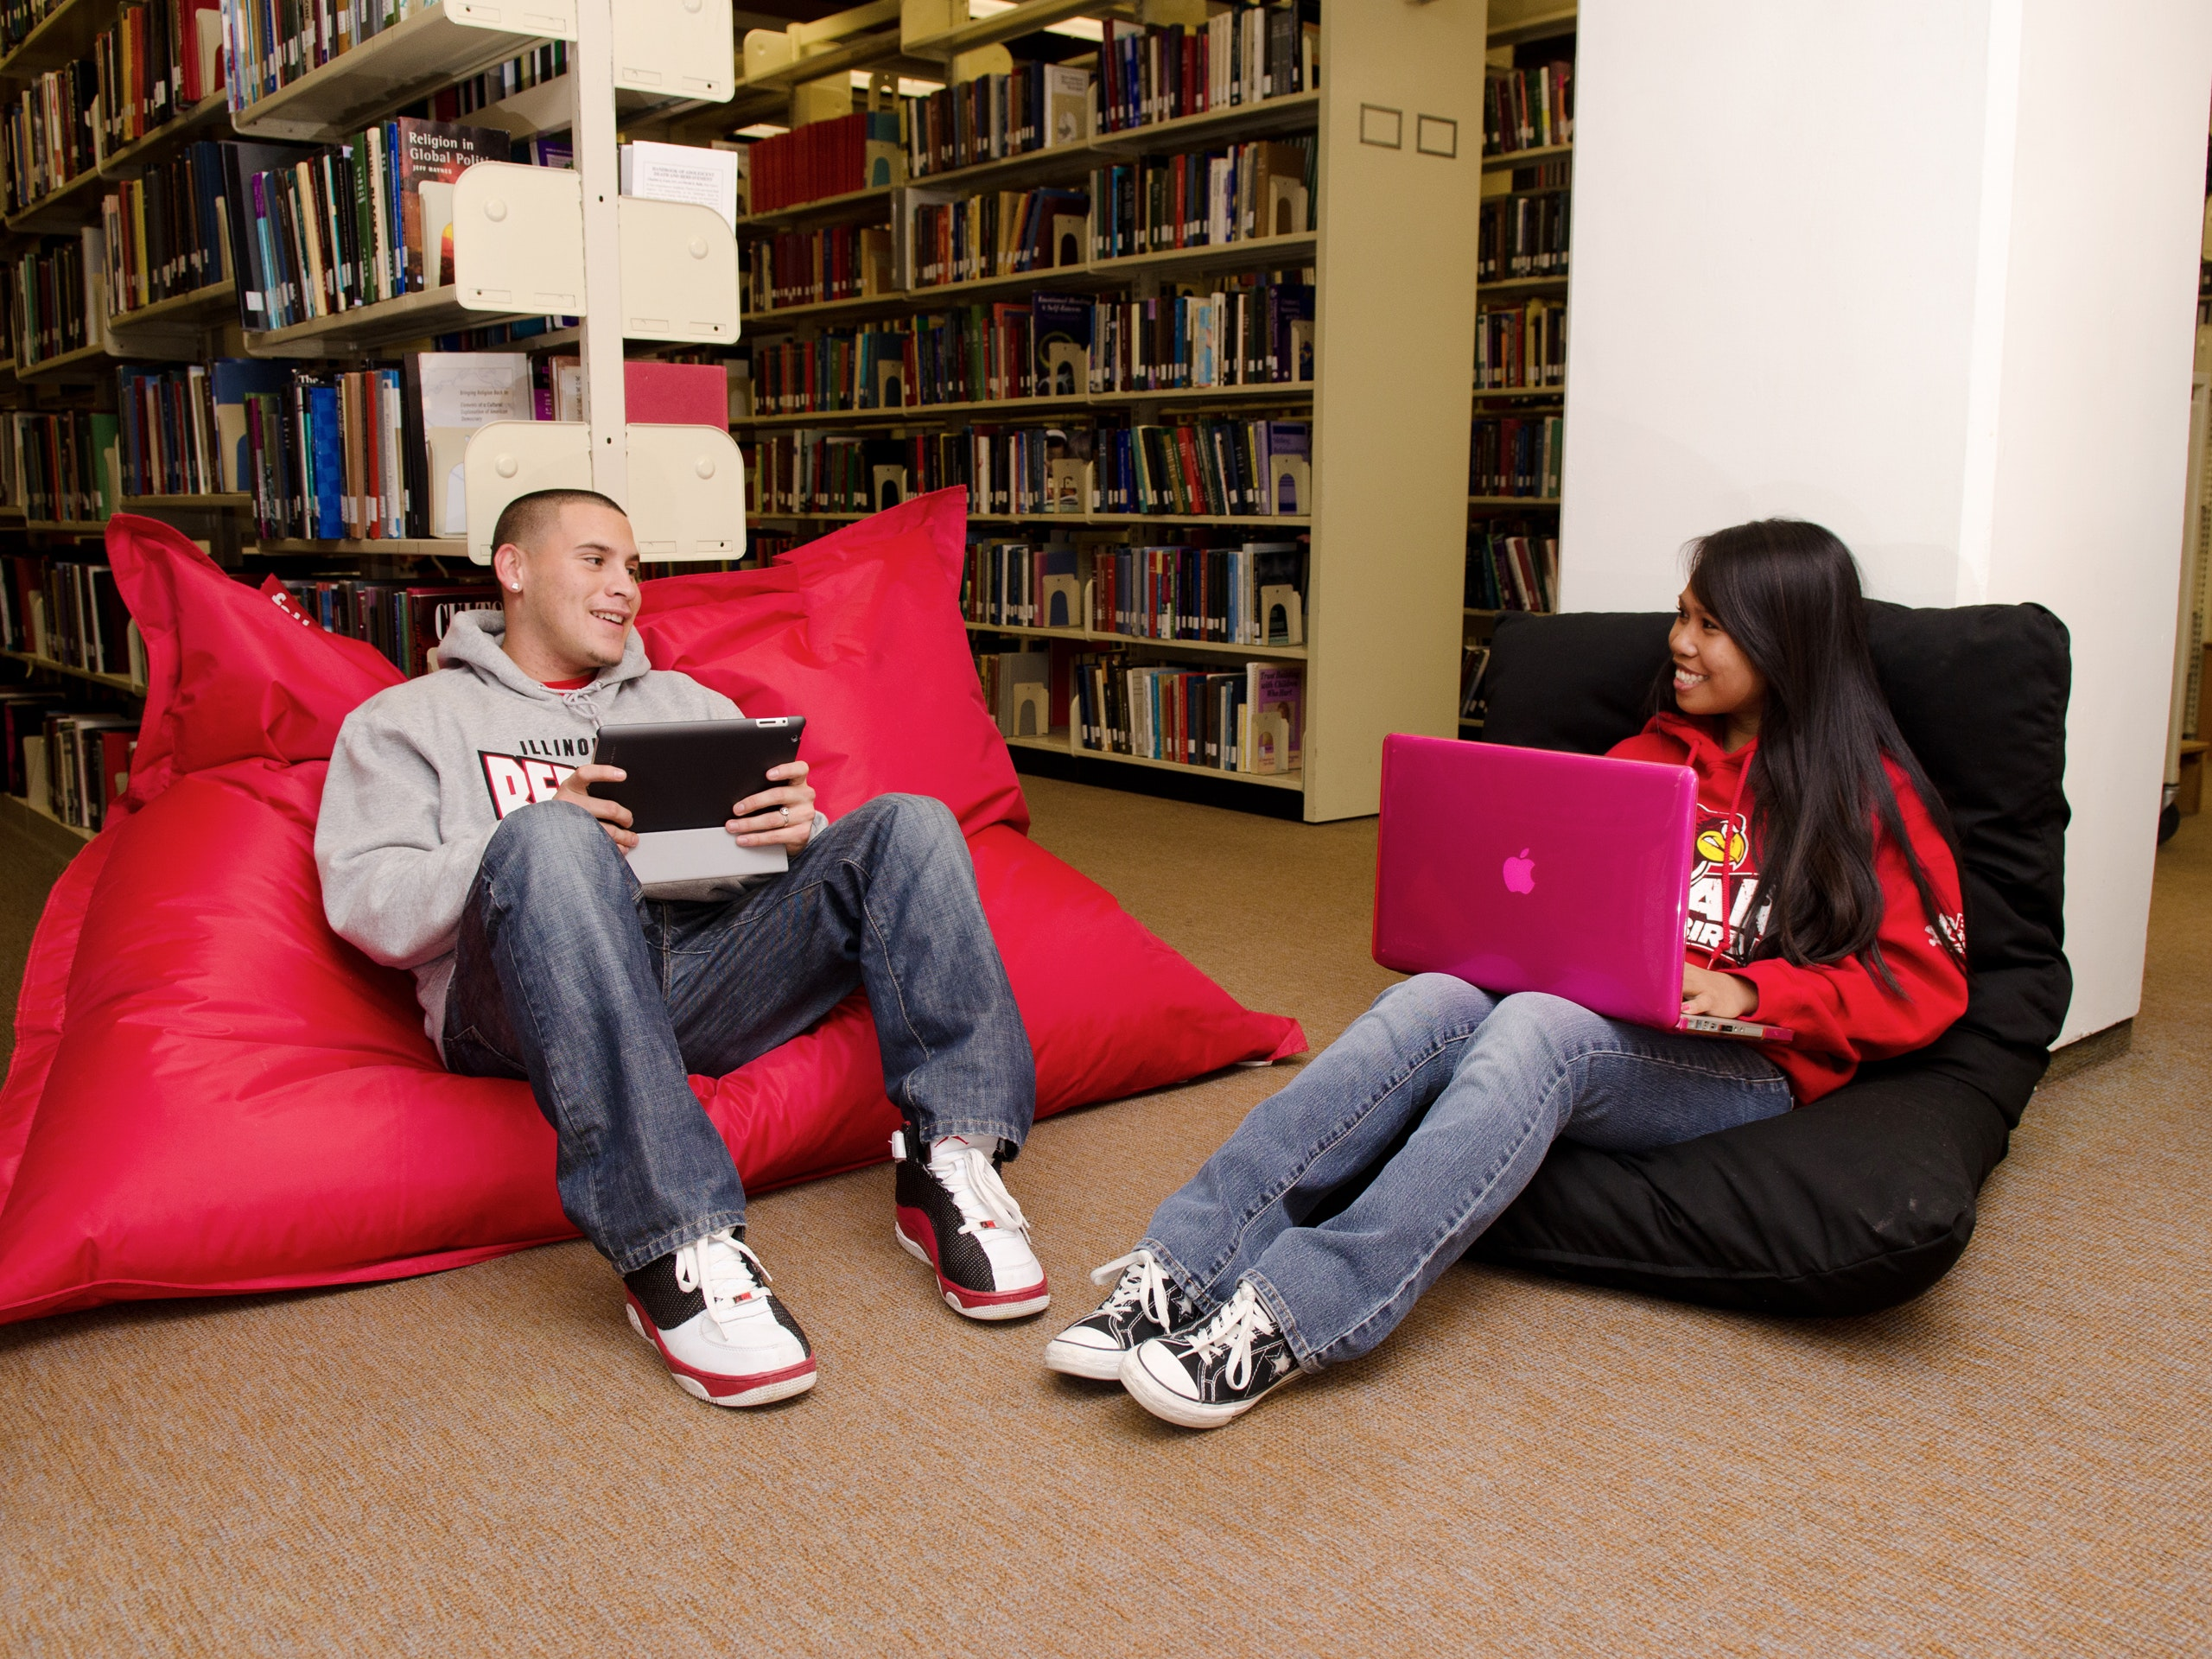 Students studying in Milner Library.